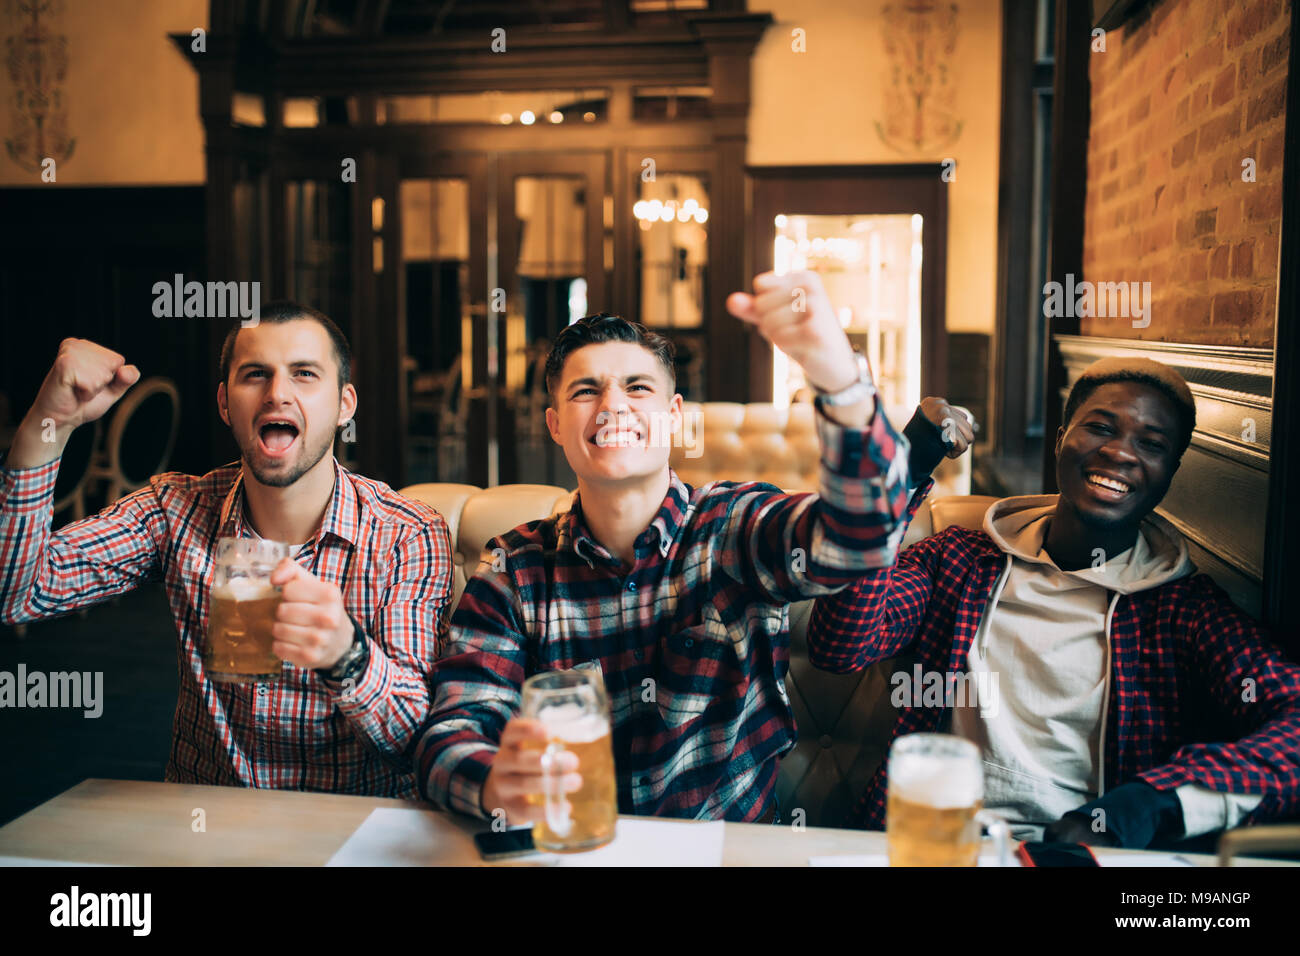 Happy football fans or male friends drinking beer and celebrating victory at bar or pub - Stock Image